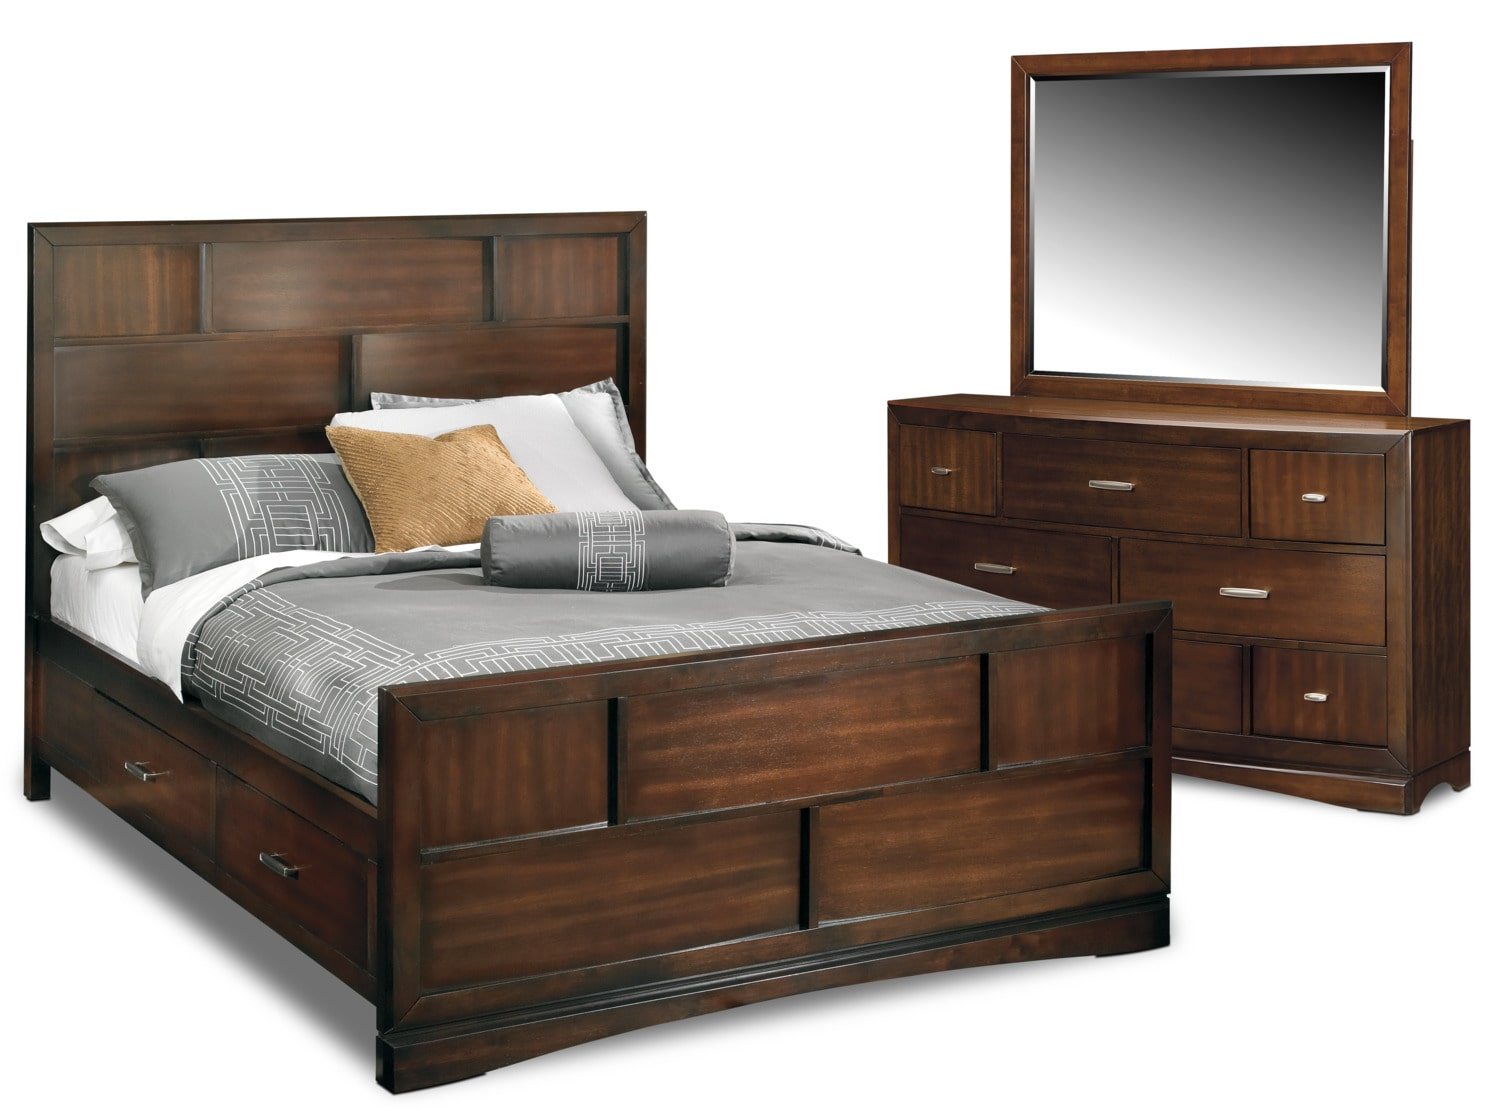 Unique Bedroom Sets With Drawers Under Bed Decorating Ideas